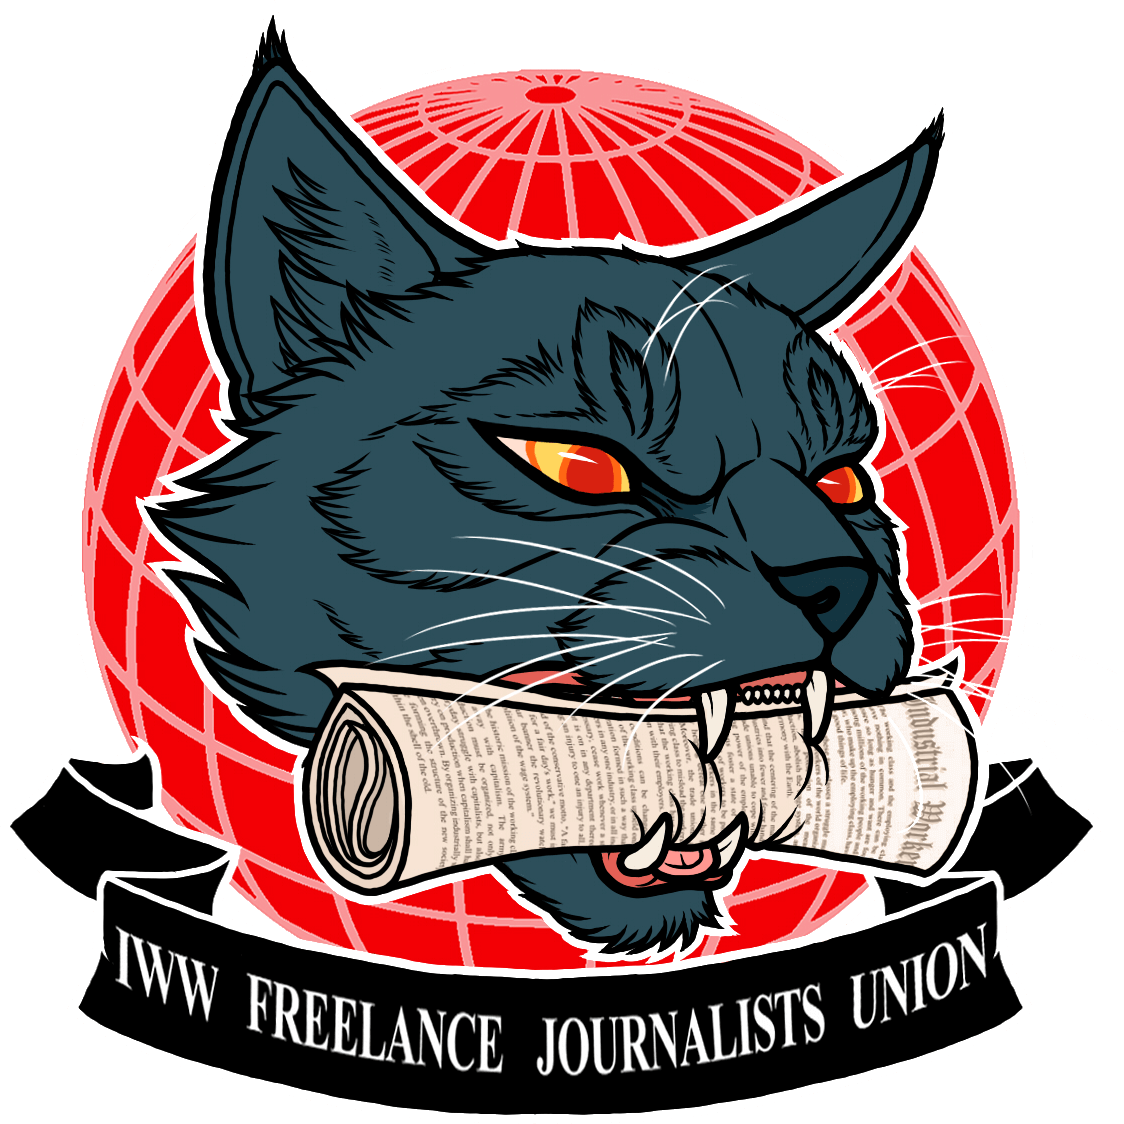 Freelance Journalists Union logo with letters FJU, image of a globe and three stars